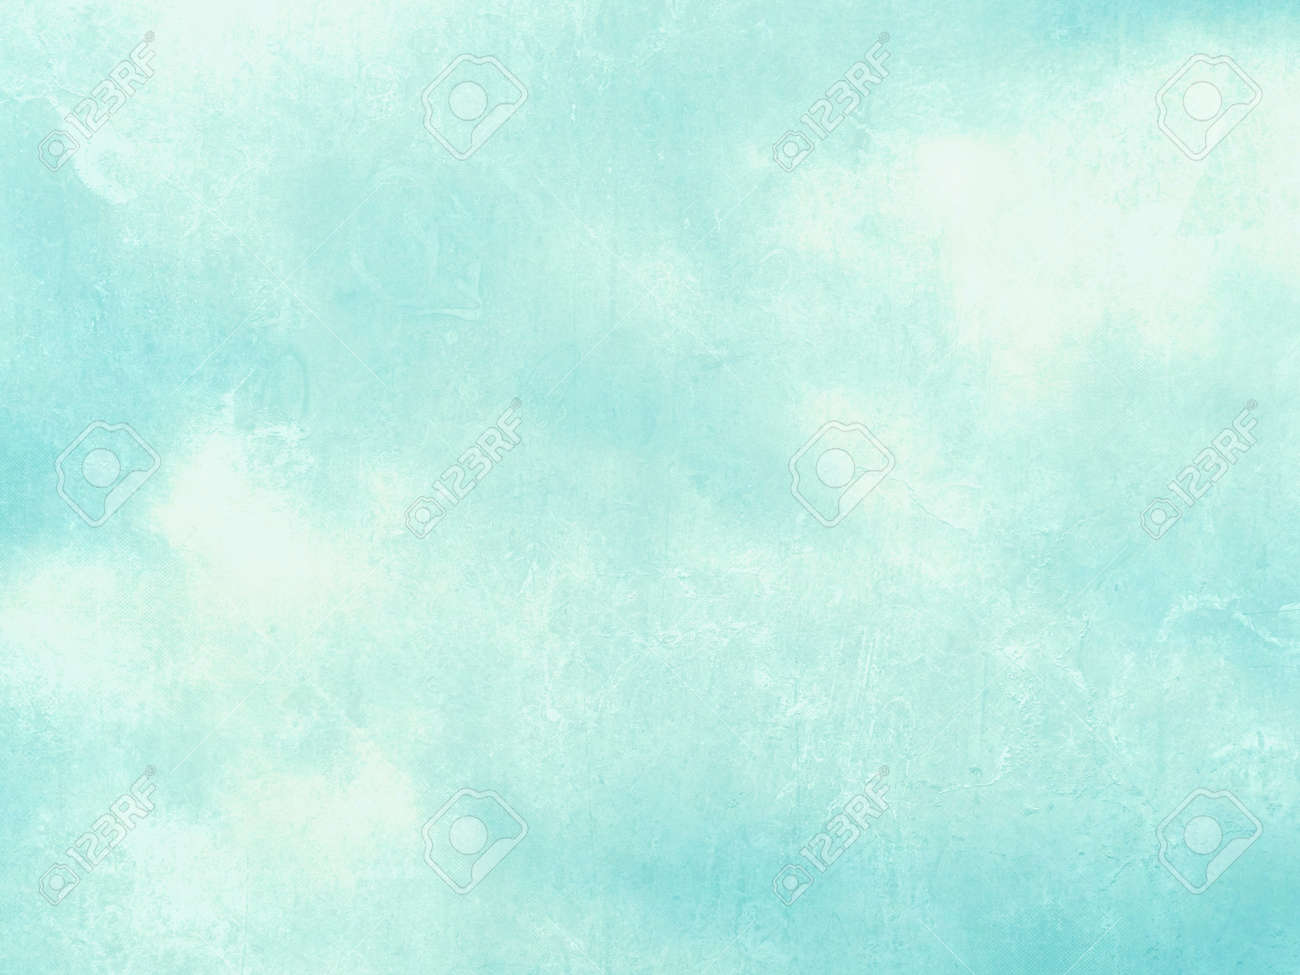 Blue Green Watercolor Background Abstract Pastel Sky Texture Stock Photo Picture And Royalty Free Image Image 105397820